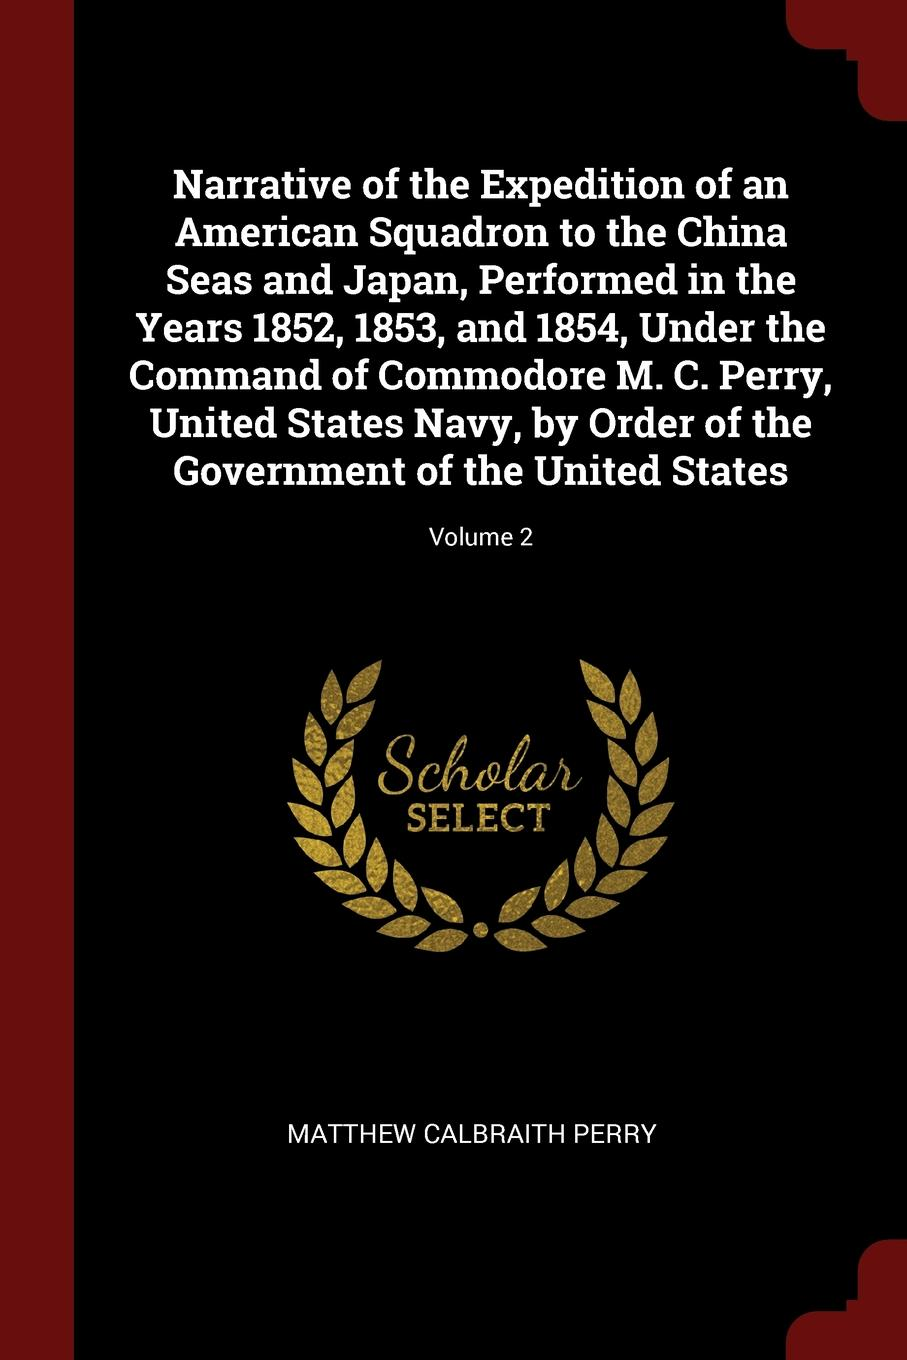 Matthew Calbraith Perry Narrative of the Expedition of an American Squadron to the China Seas and Japan, Performed in the Years 1852, 1853, and 1854, Under the Command of Commodore M. C. Perry, United States Navy, by Order of the Government of the United States; Volume 2 f torkunov c noonan t shakleina russia and united states in the evoling world order